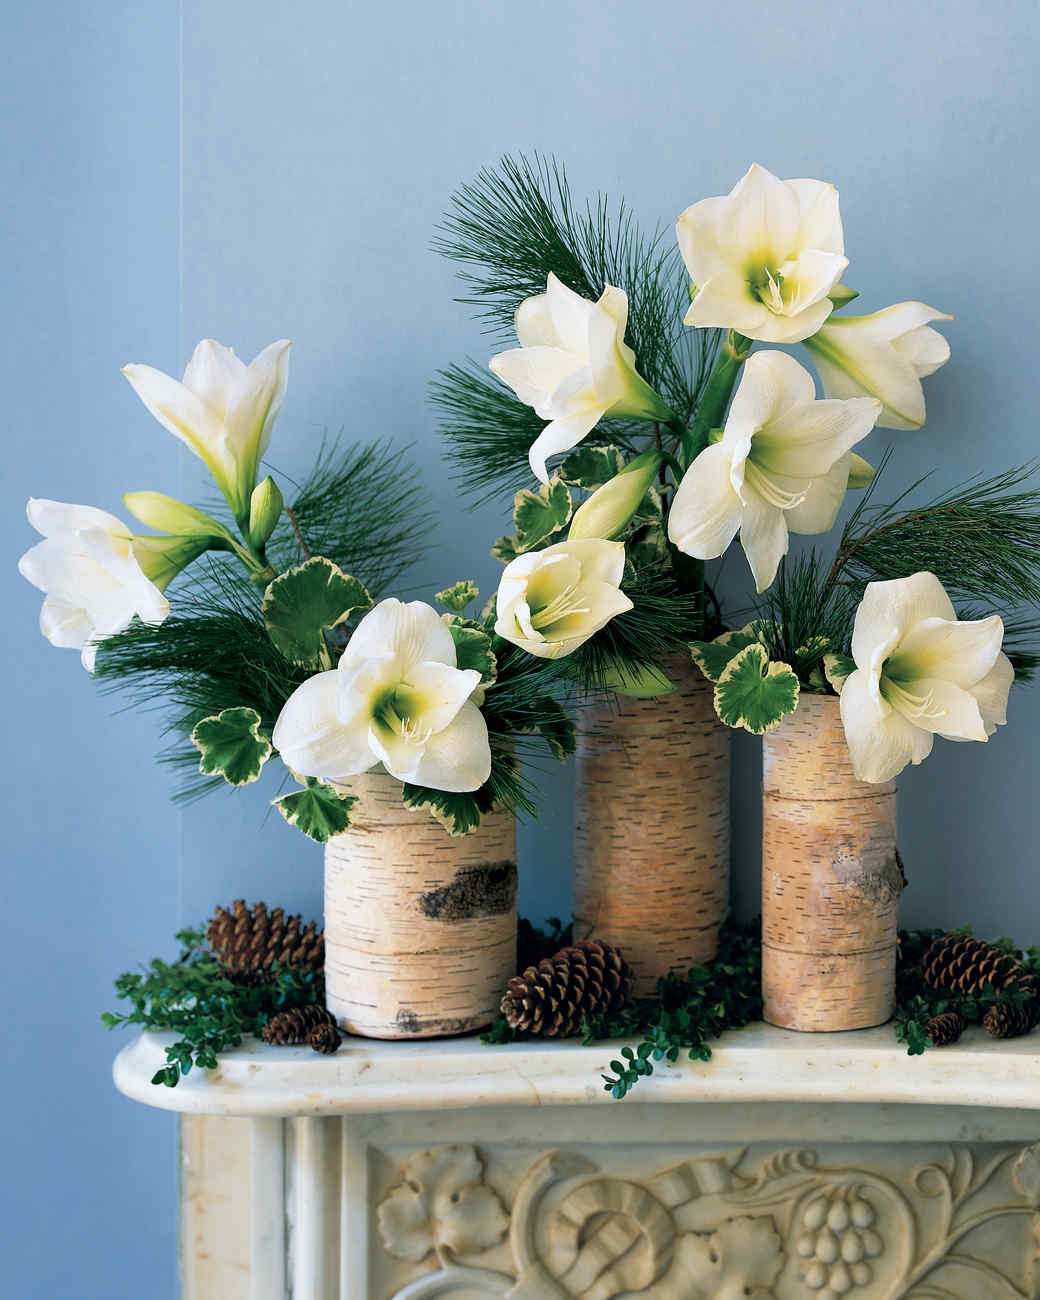 flower arrangements for holidays martha stewart